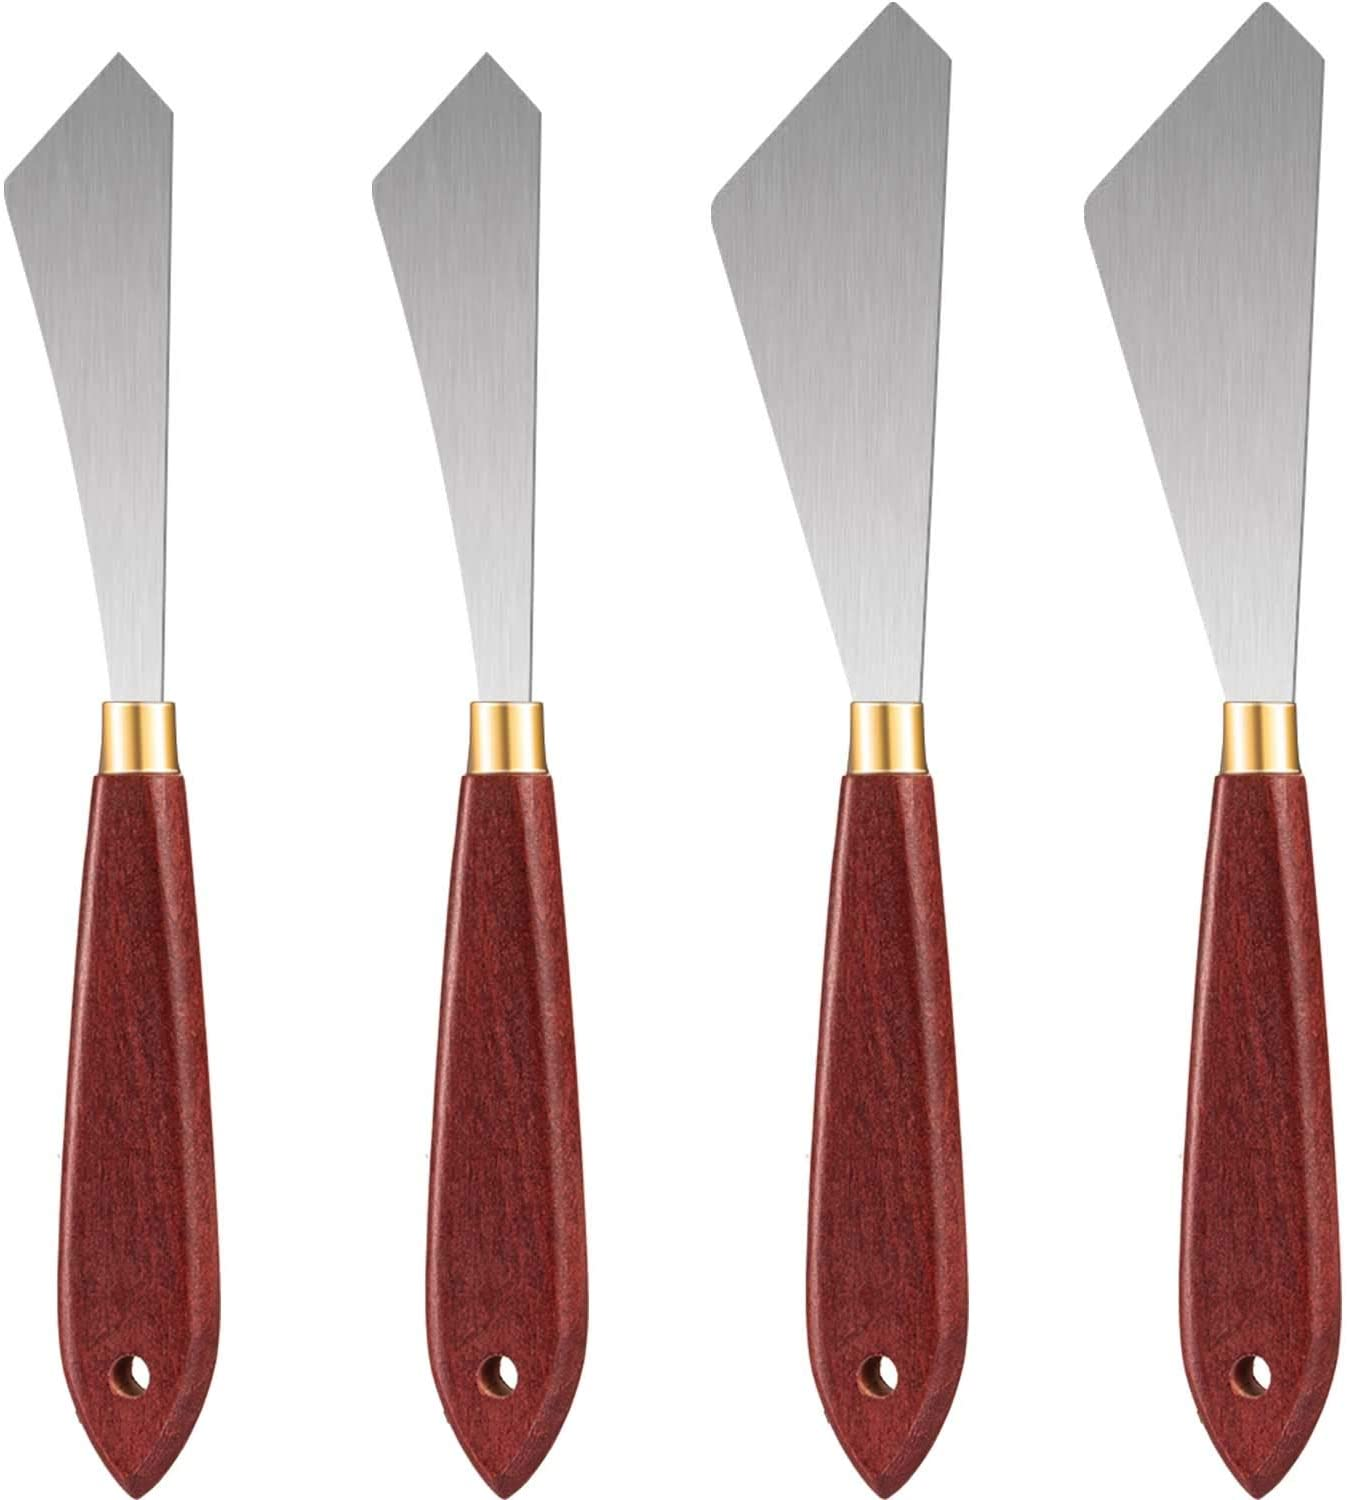 4 Pieces Painting Knife Set, Painting Mixing Scraper Stainless Steel Palette Knife Painting Art Spatula with Wood Handle for Oil Painting